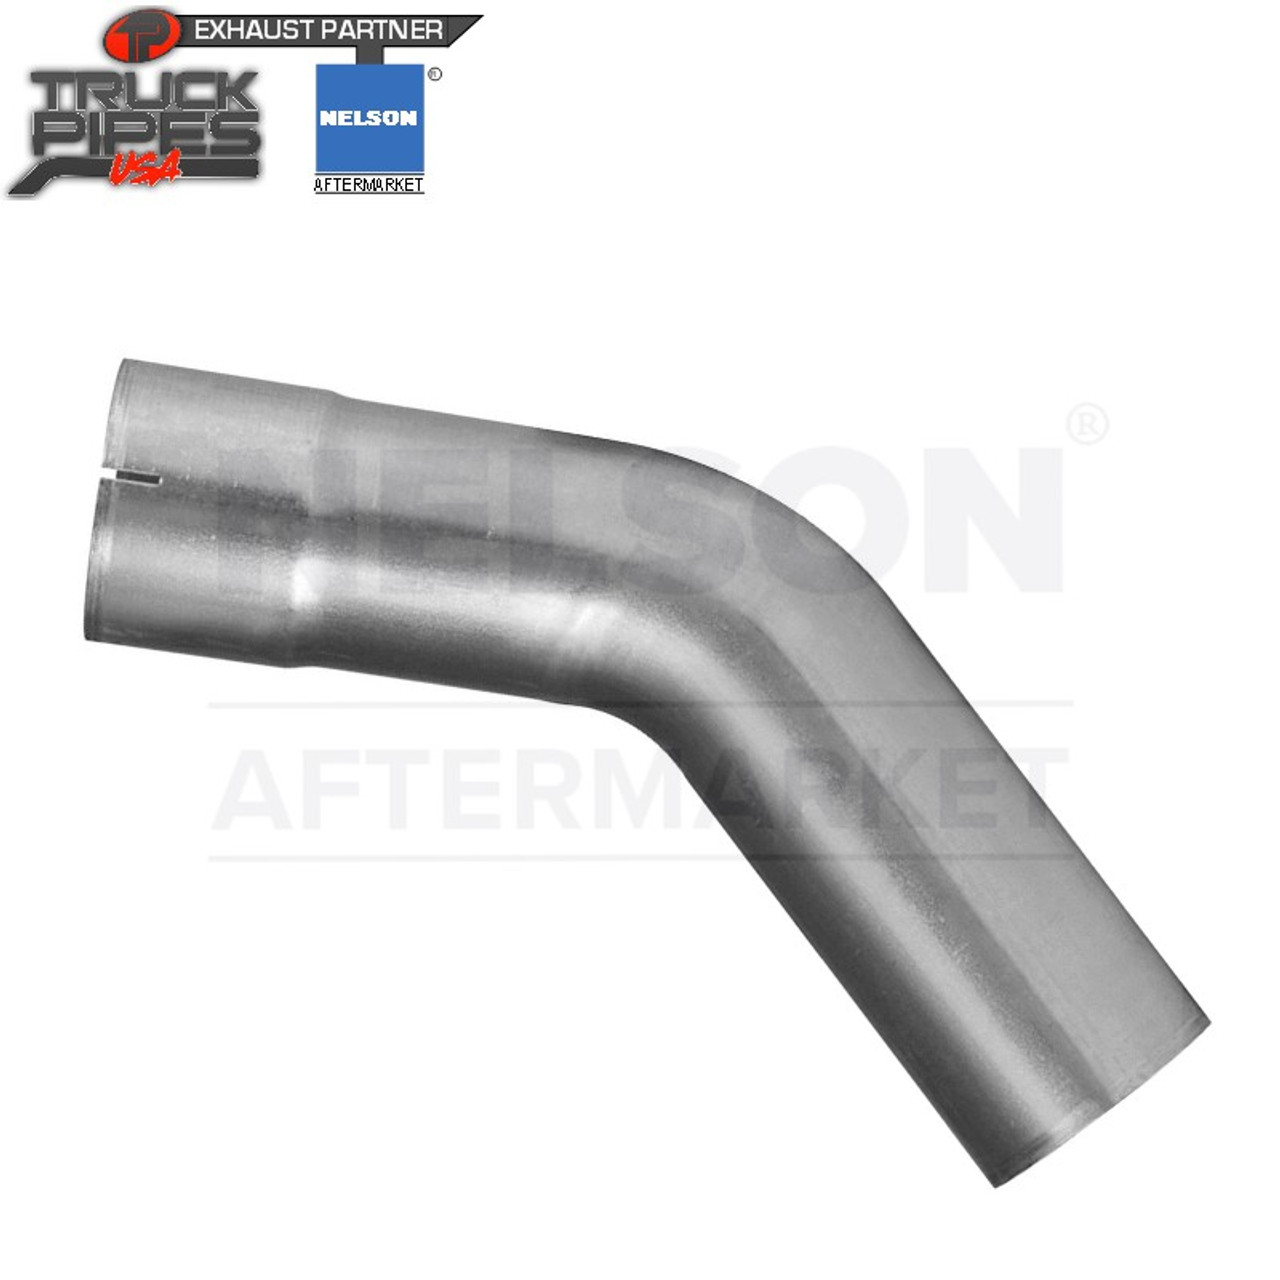 "4"" OD-ID 45 Degree Exhaust Elbow Aluminized x 8"" Leg Length Nelson 89780A"